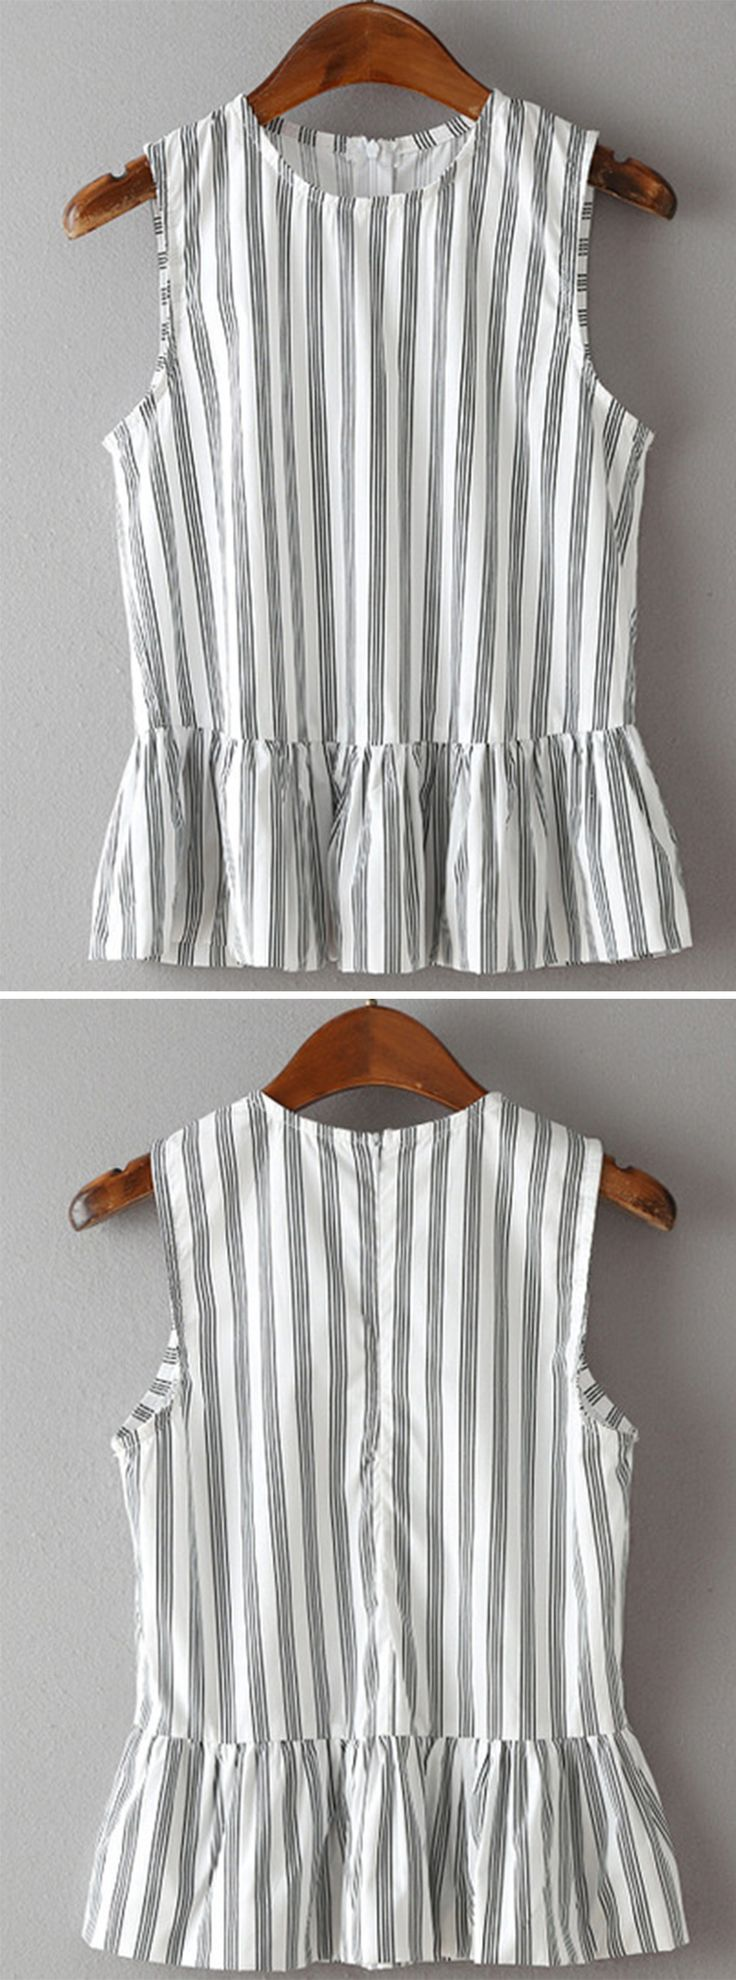 Vertical Striped Sleeveless Peplum Top: